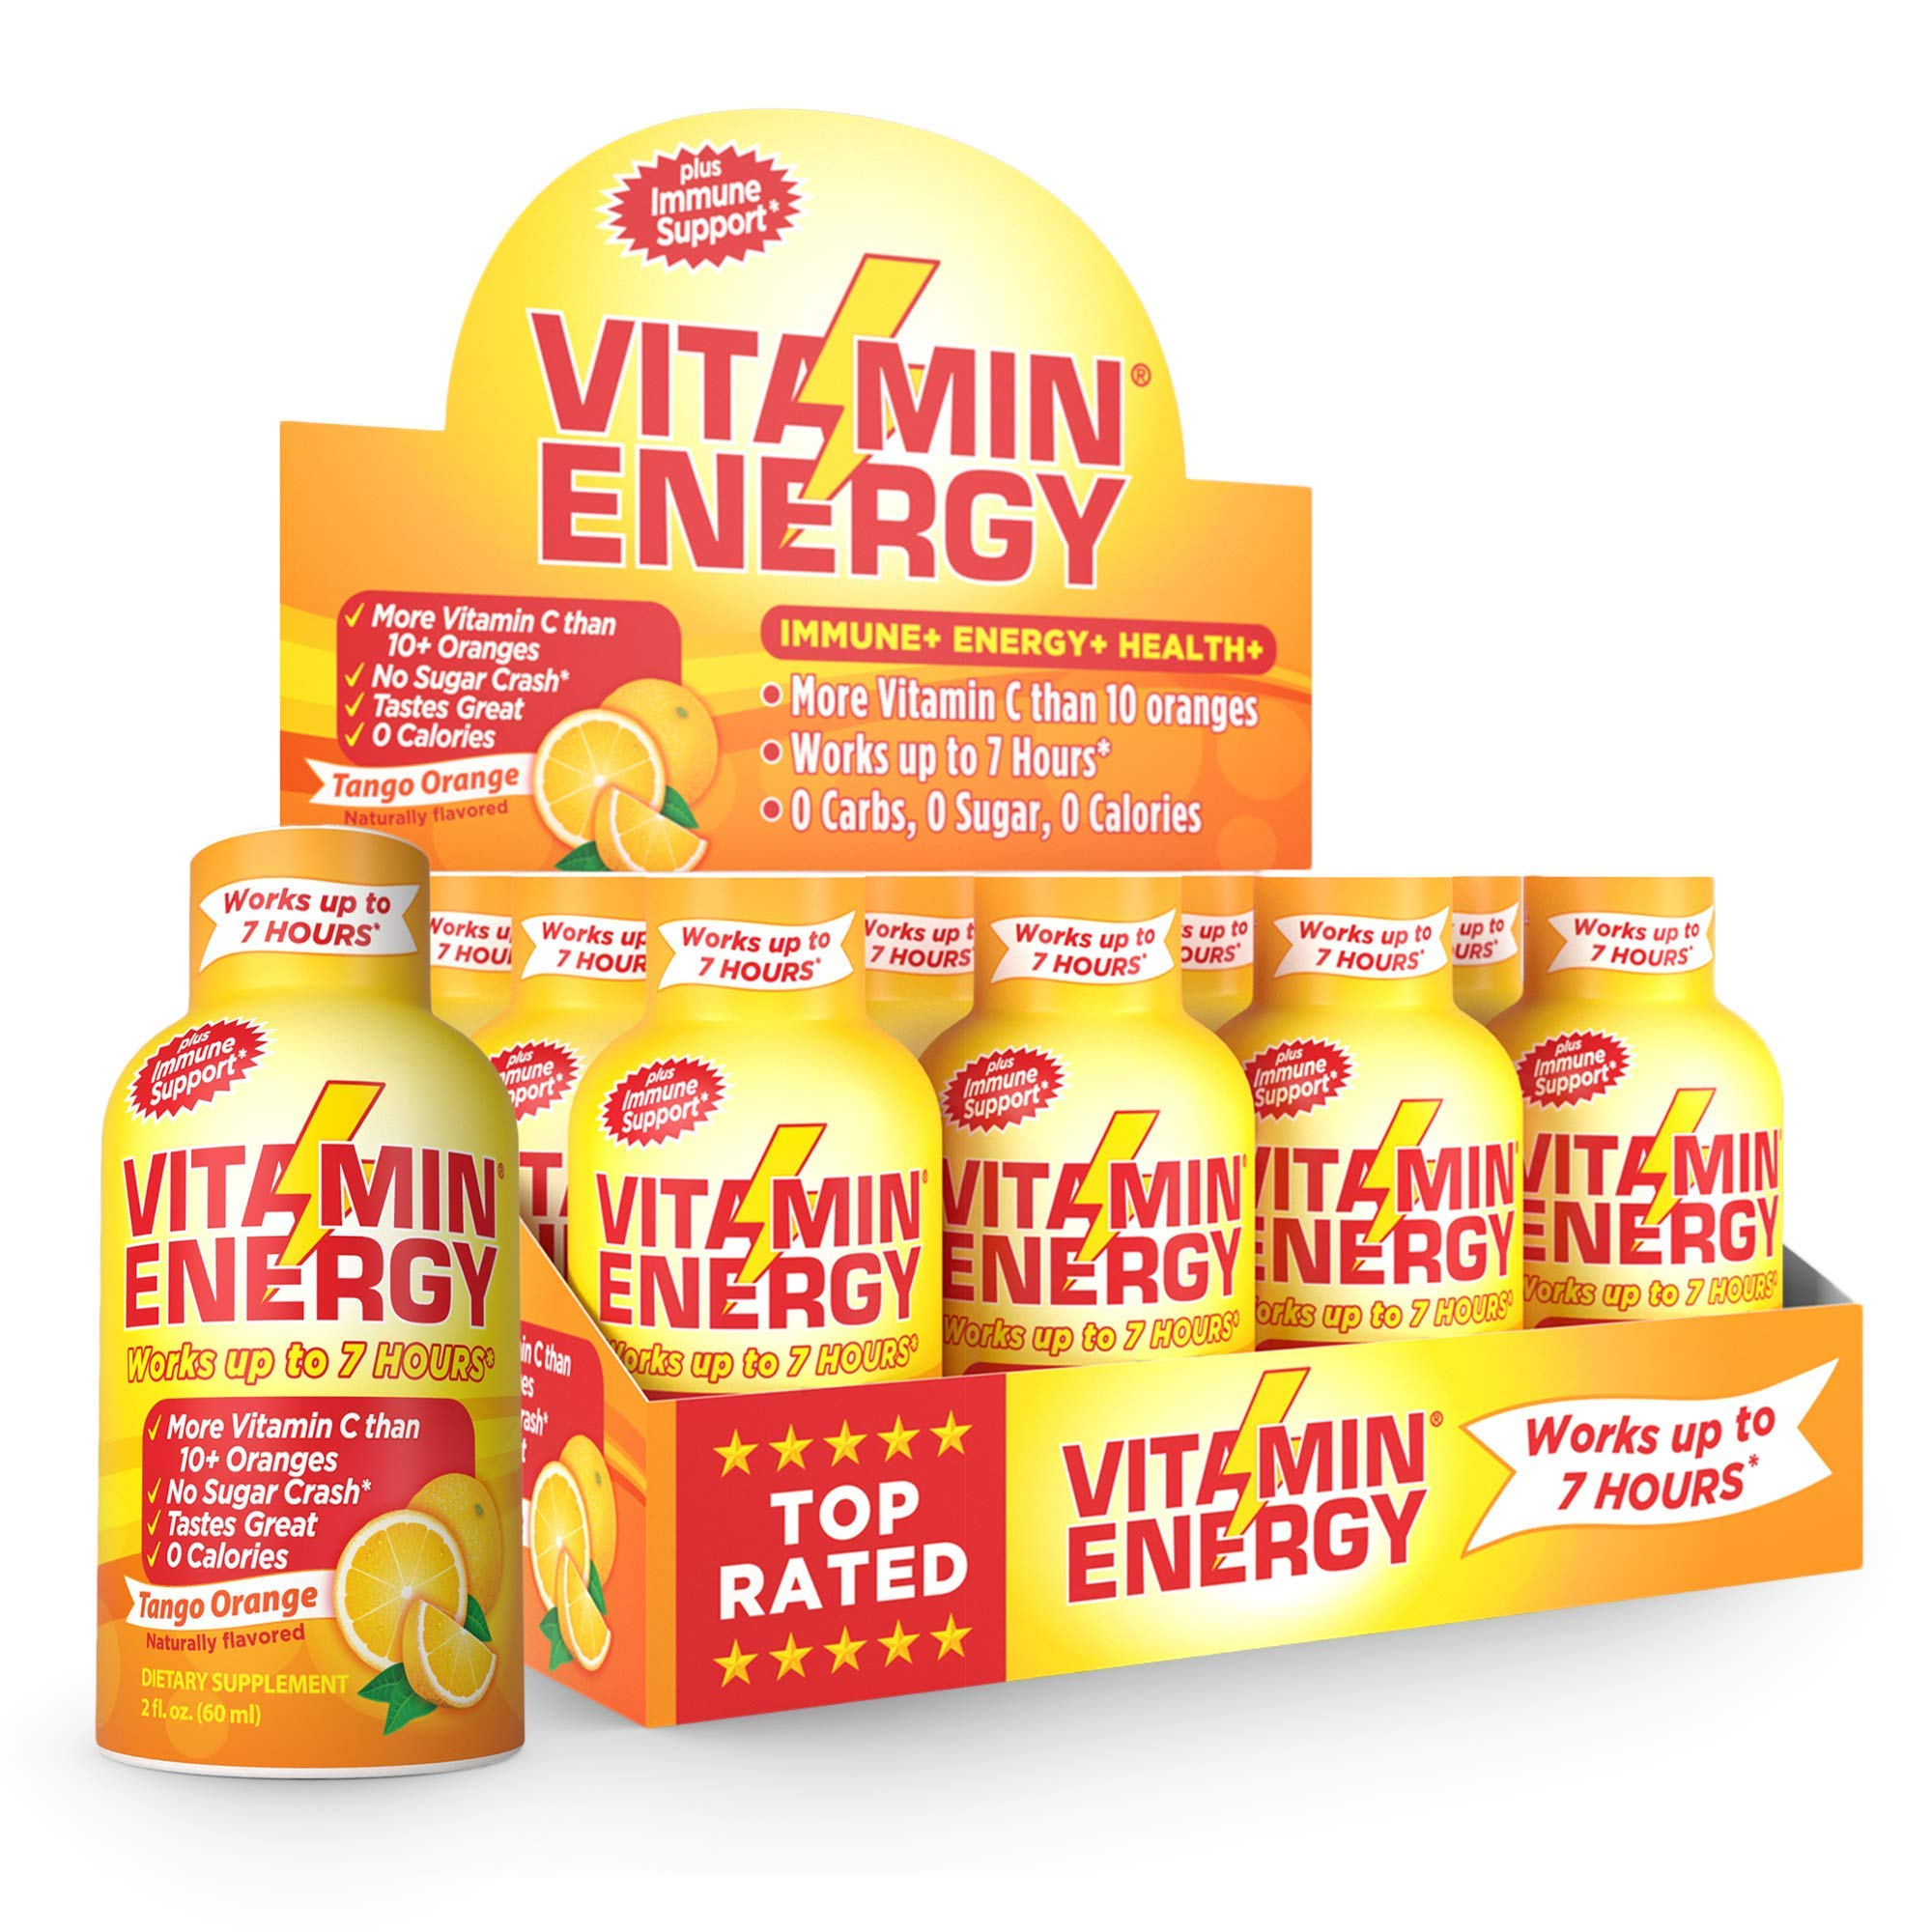 Vitamin Energy Shots - Energy Lasts up to 7+ Hours*, Supports Immune Health*, Great Tasting Tango Orange, Keto Friendly 0 Sugar / 0 Carbs (12 pack) by Vitamin Energy